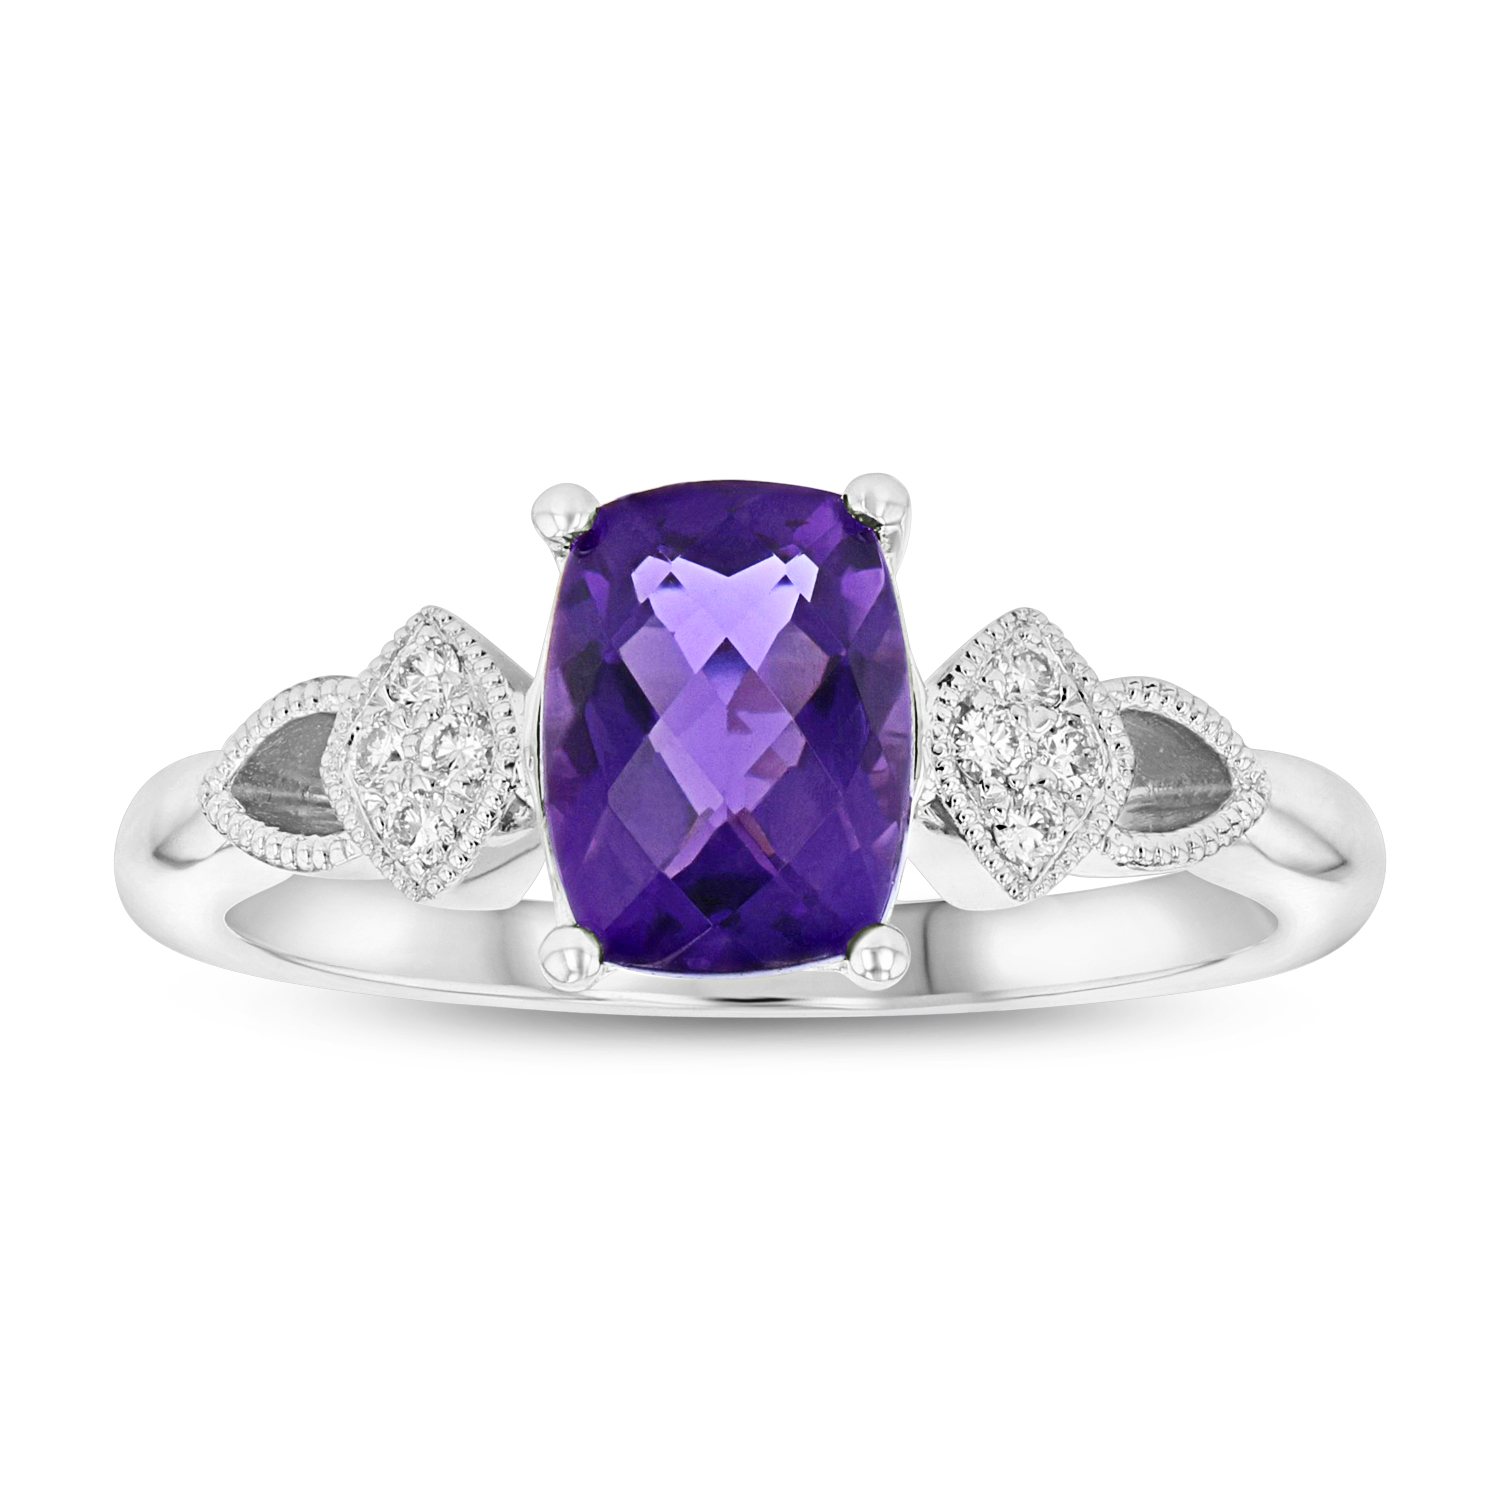 View Diamond and Amethyst ring in 14k White Gold